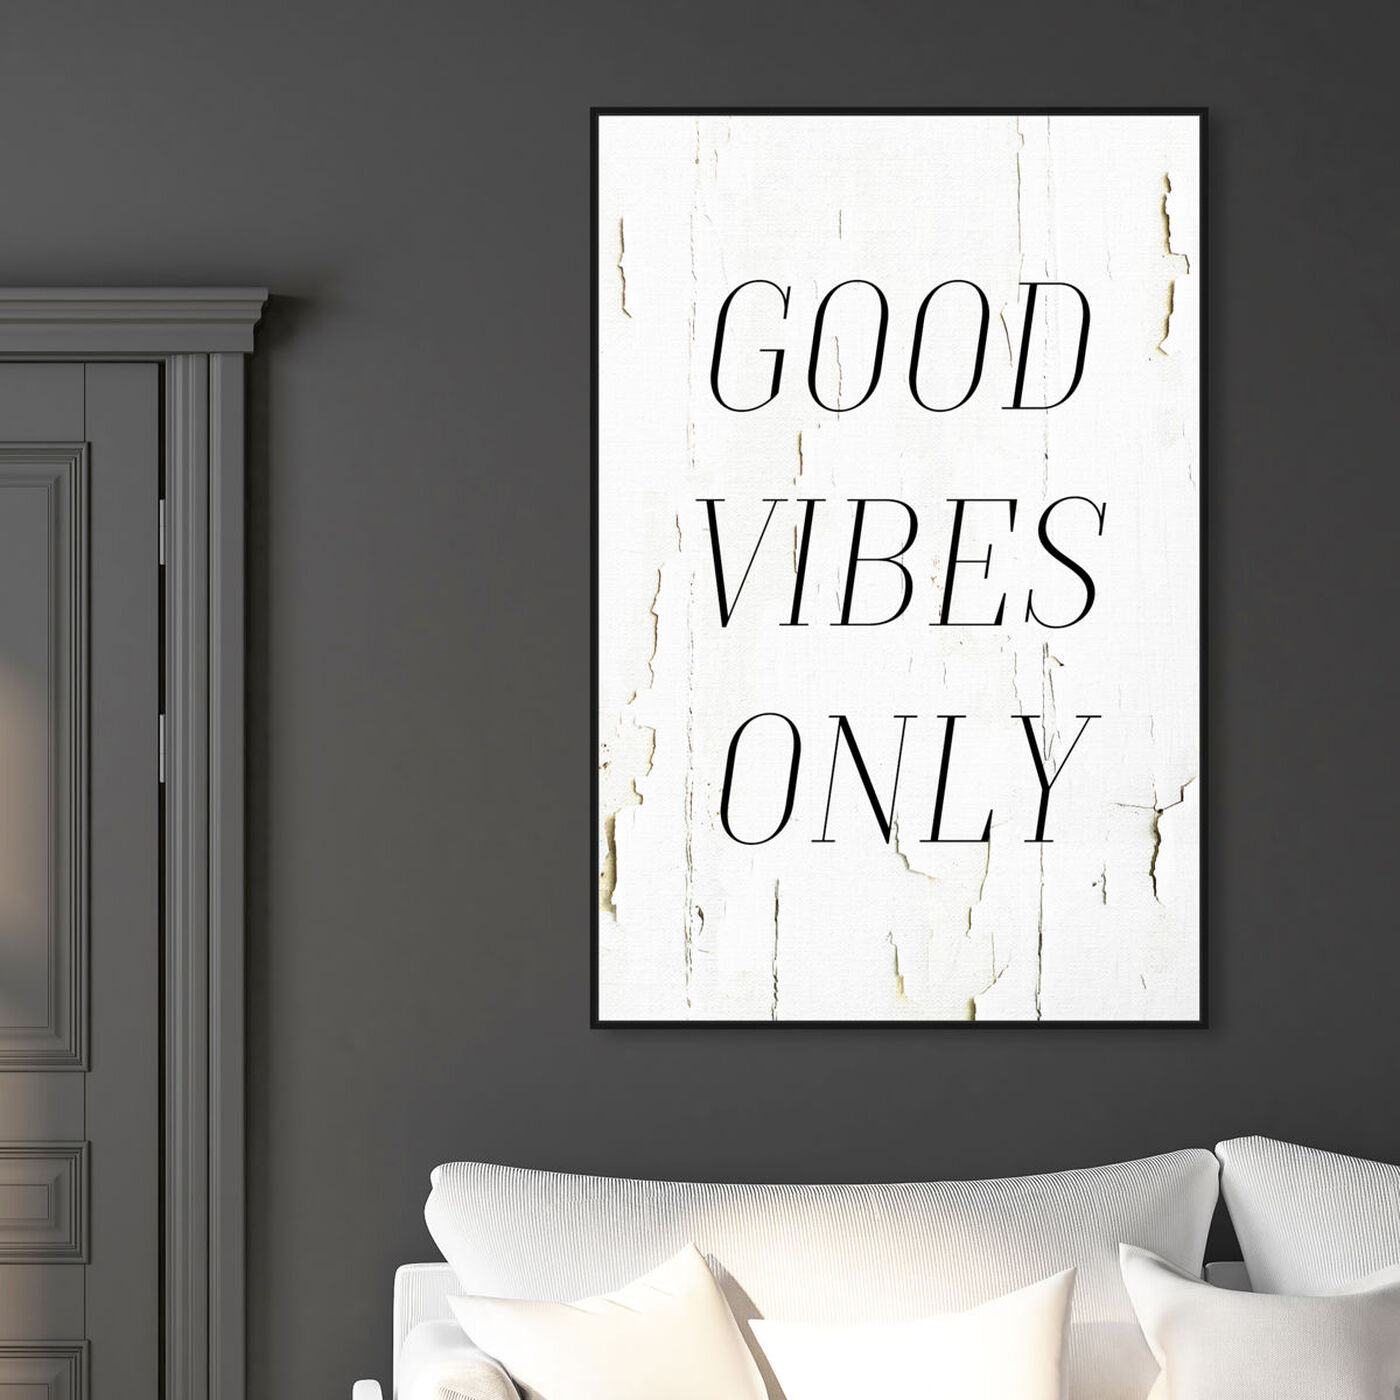 Hanging view of The Good Vibes Only featuring typography and quotes and inspirational quotes and sayings art.